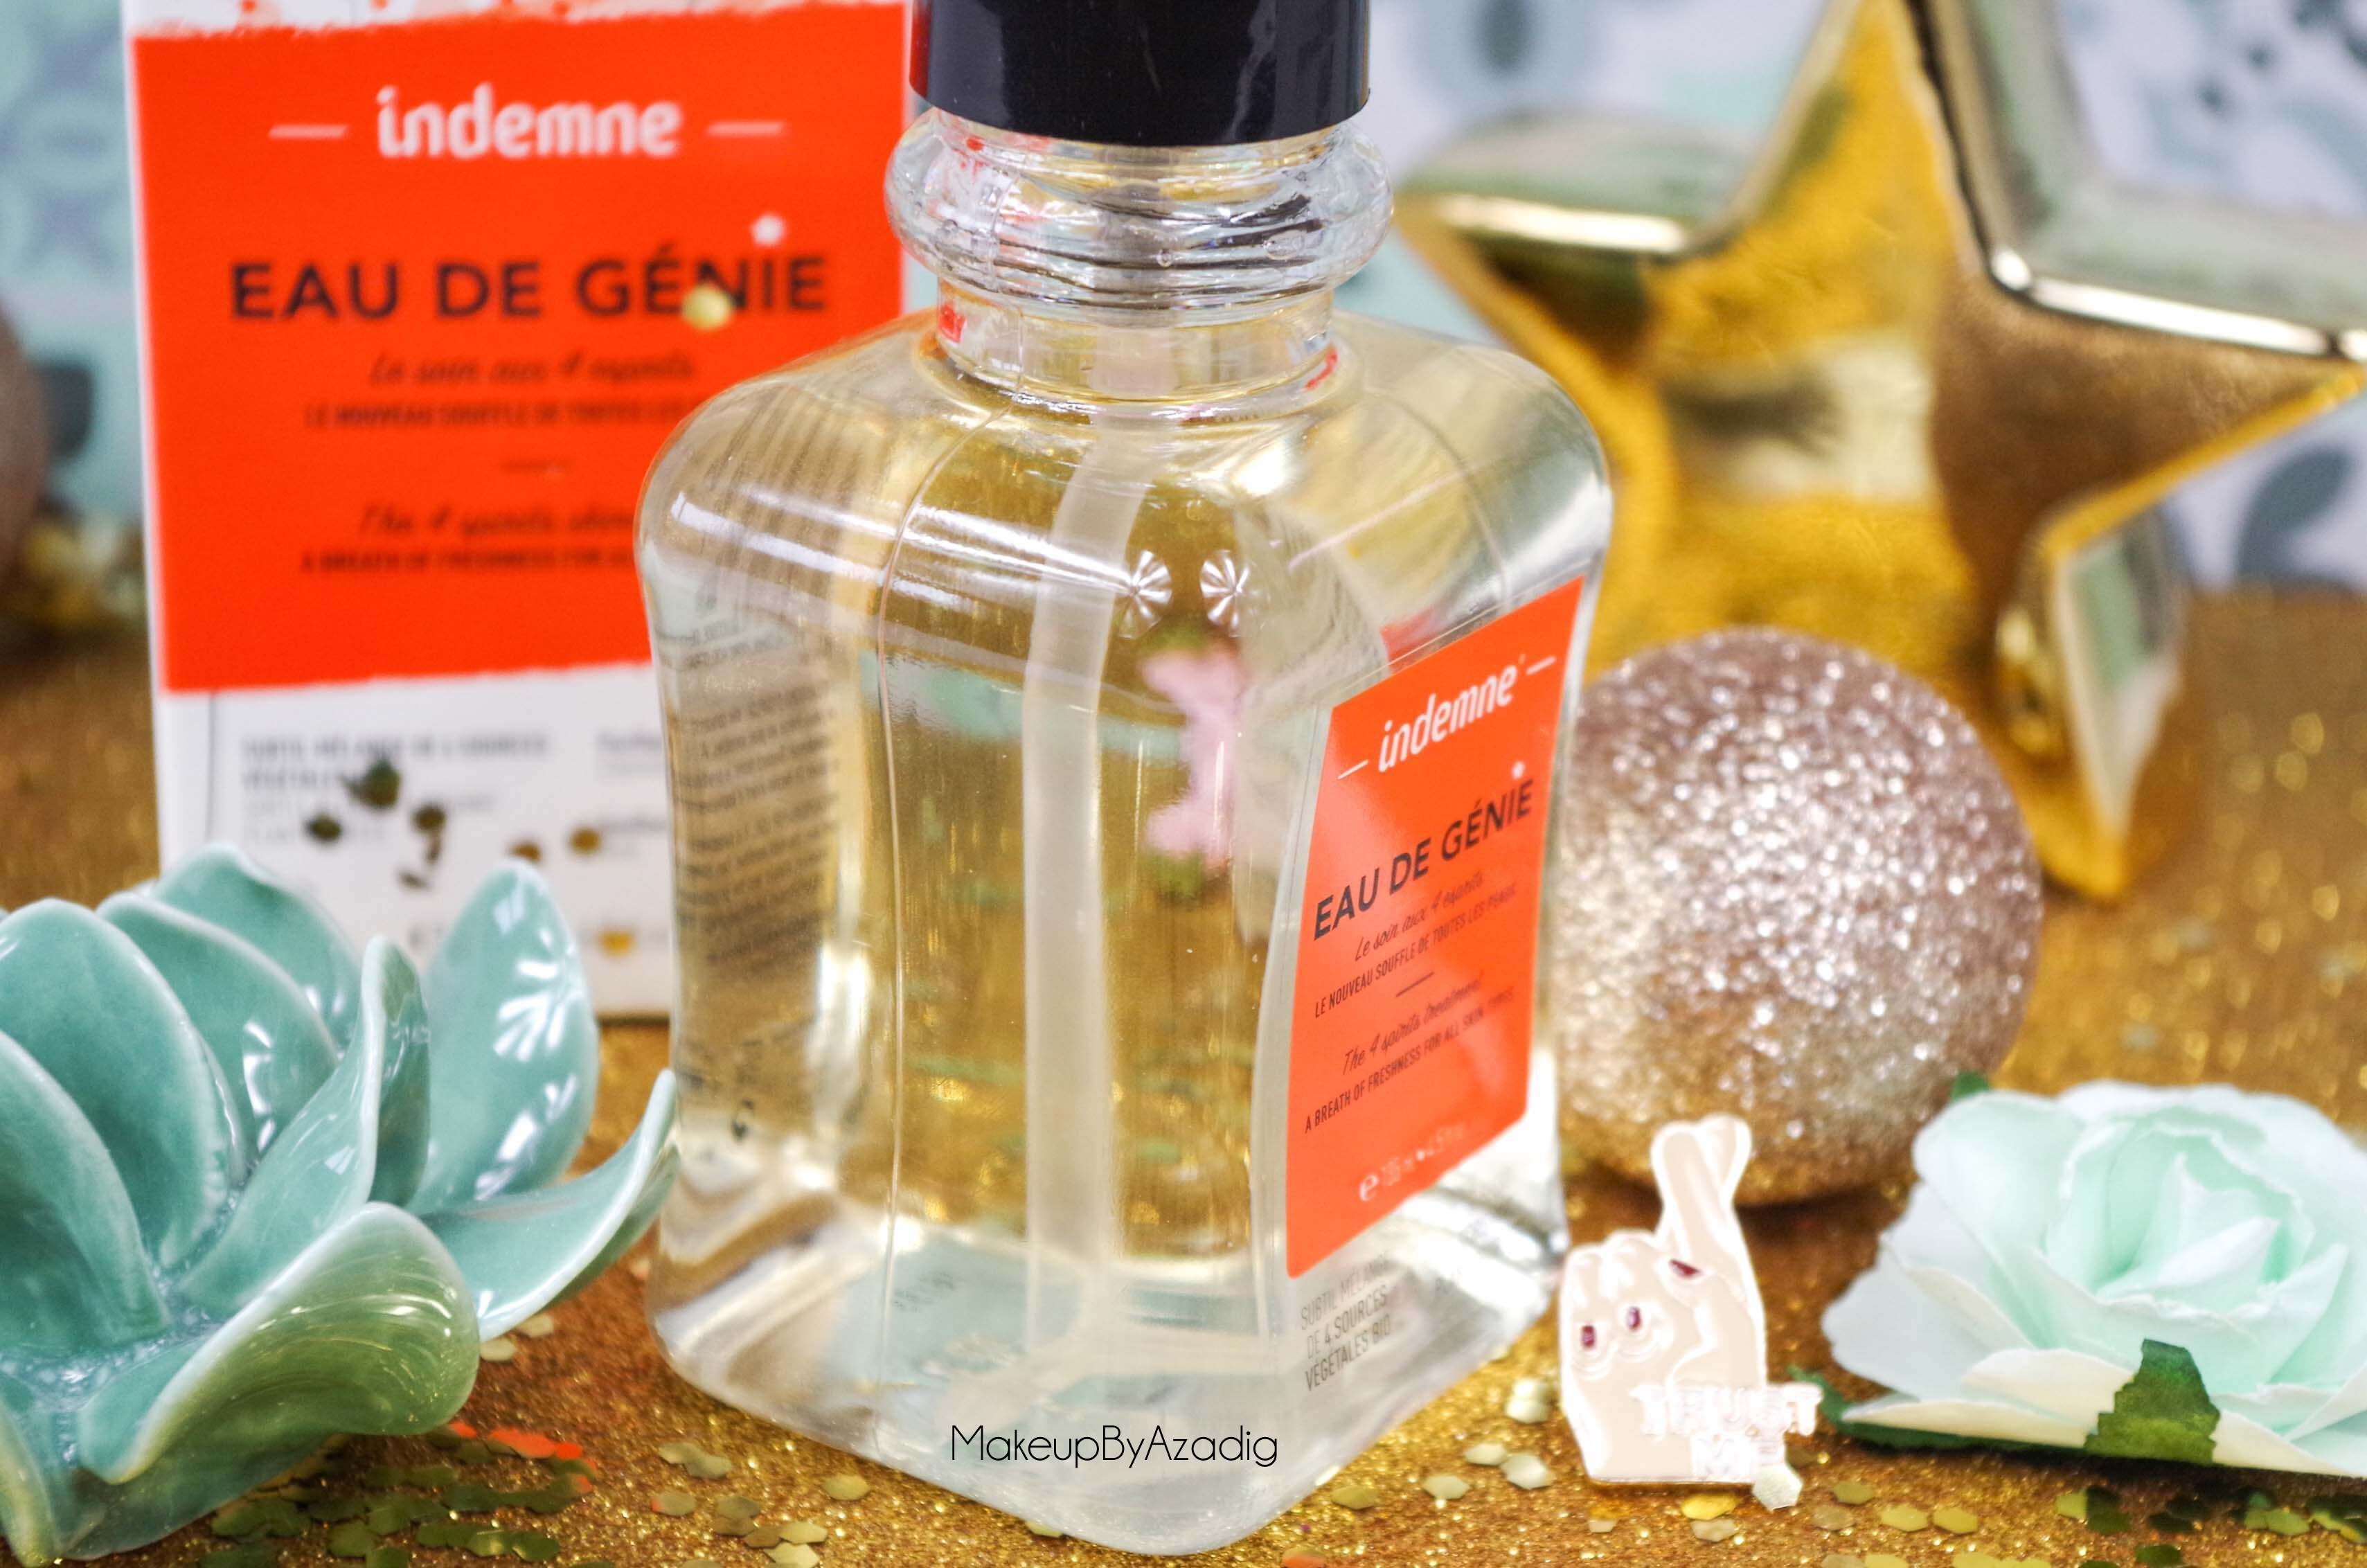 review-lotion-tonique-eau-de-genie-indemne-france-avis-prix-cosmetique-bio-produit-naturel-makeupbyazadig-teinte